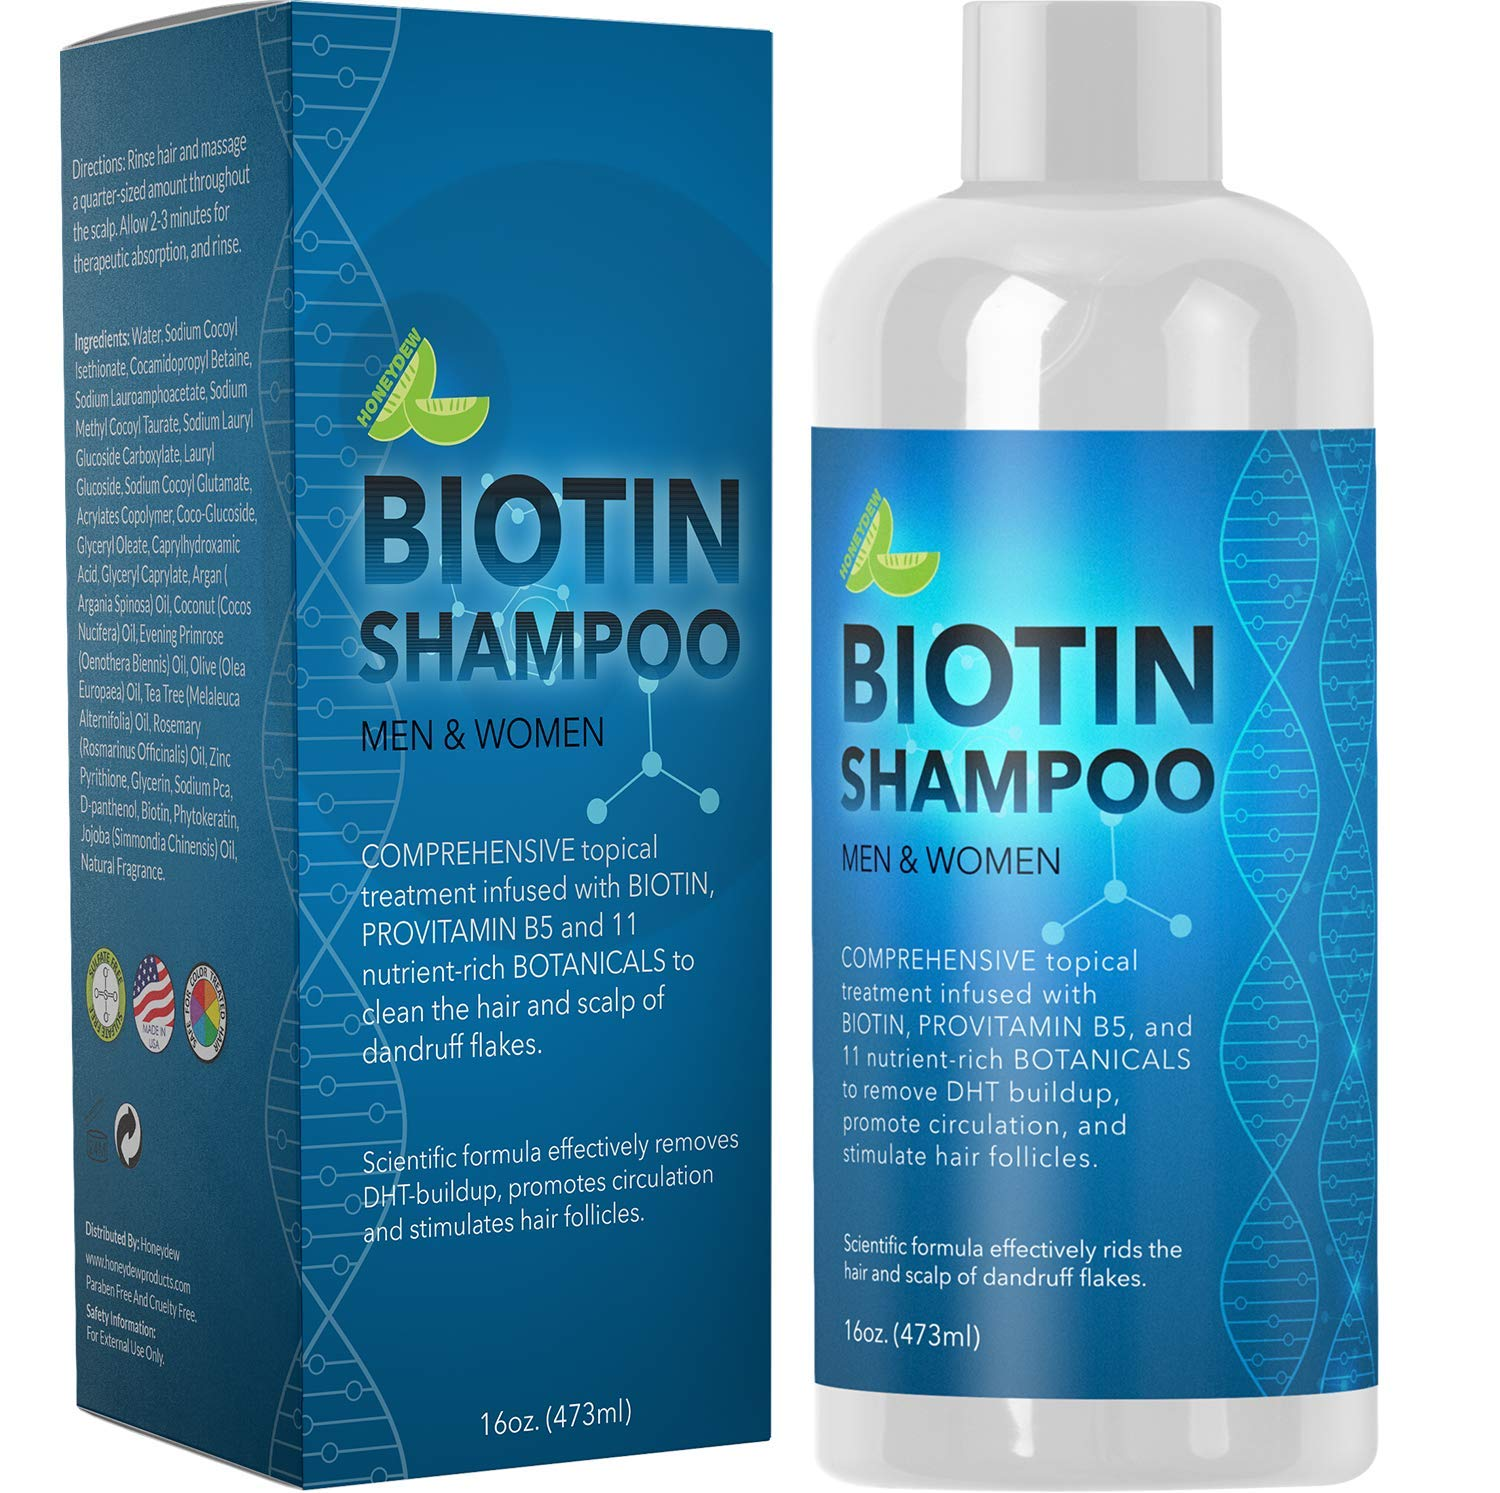 Maple Holistics Biotin Shampoo for Hair Growth